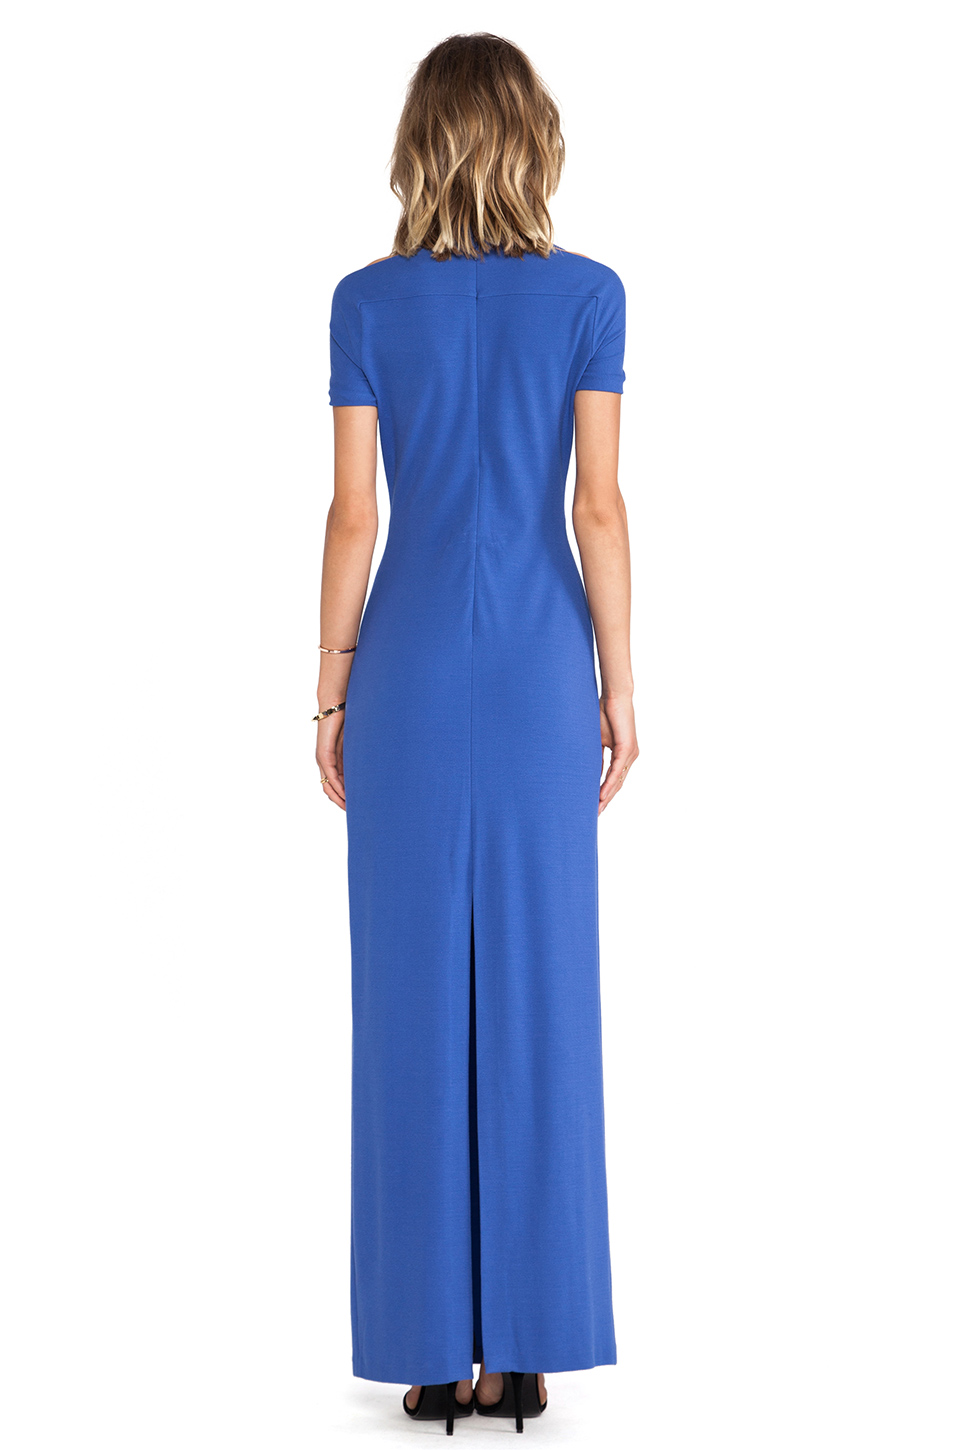 Halston Heritage Short Sleeve Gown With Shoulder Cut in Ultramarine